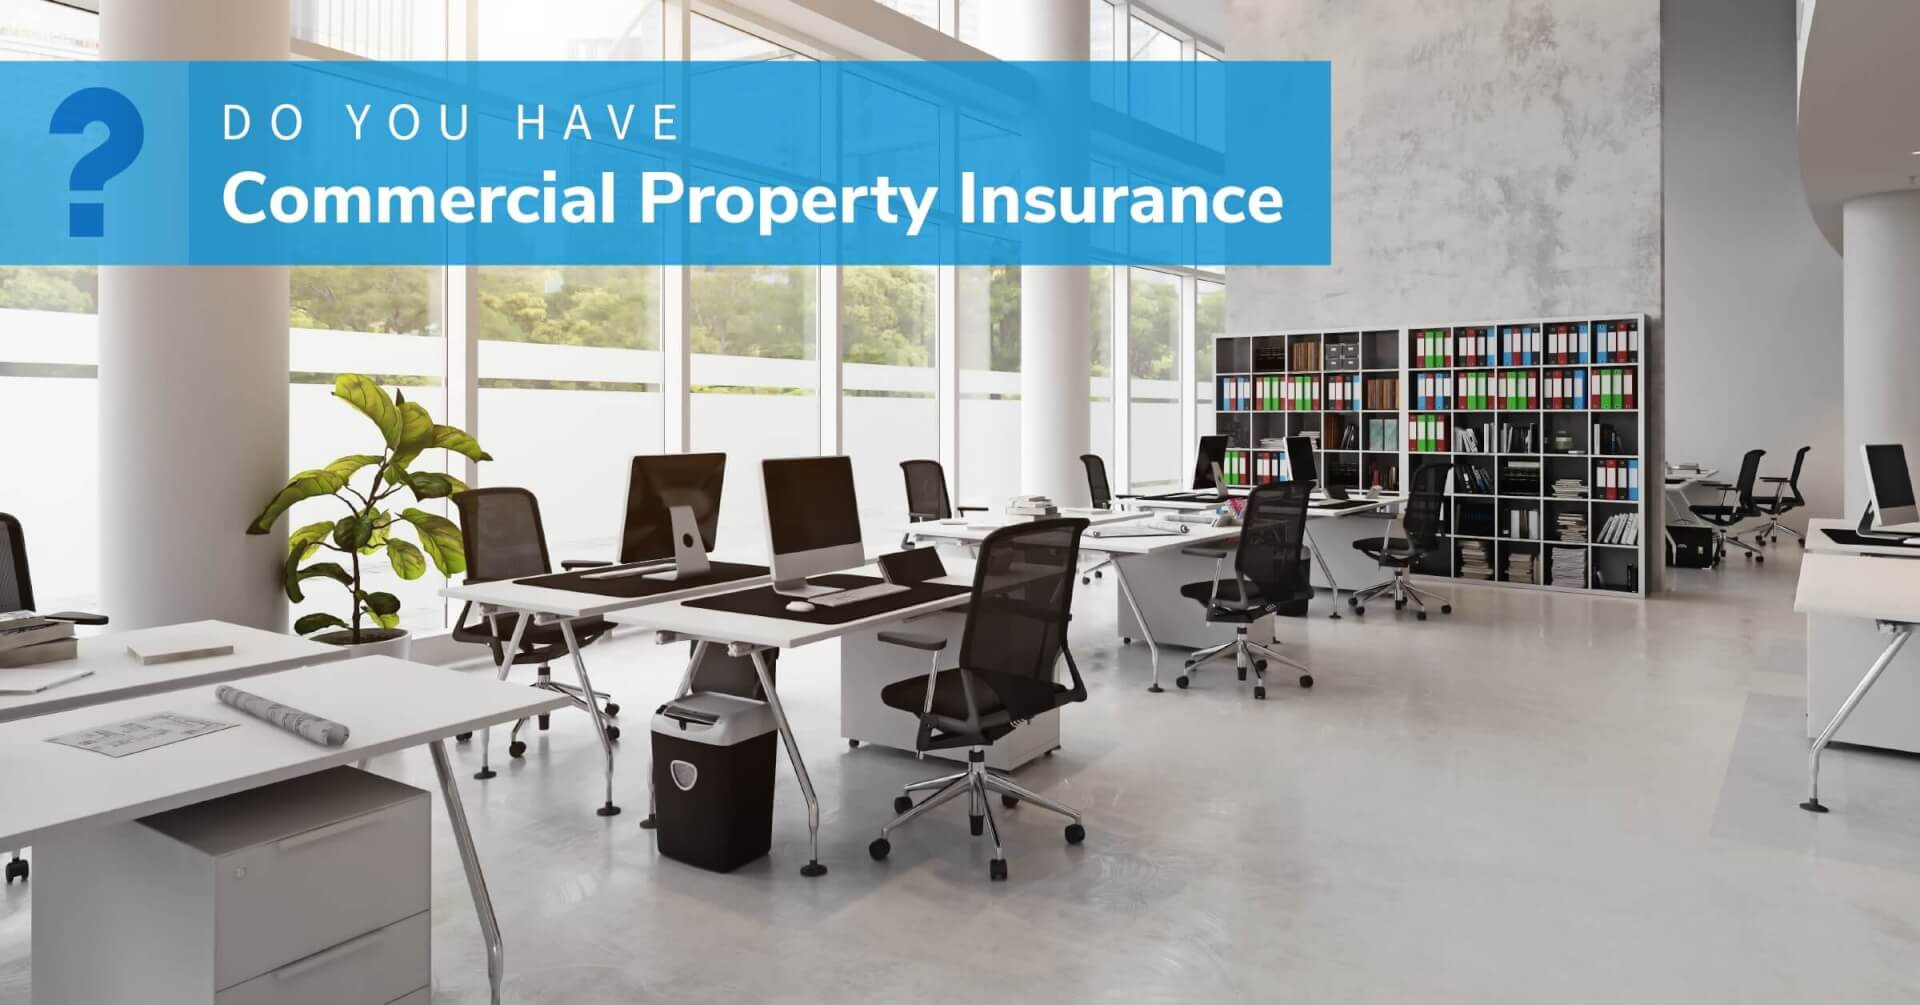 Social Business - Do You Have Commercial Property Insurance